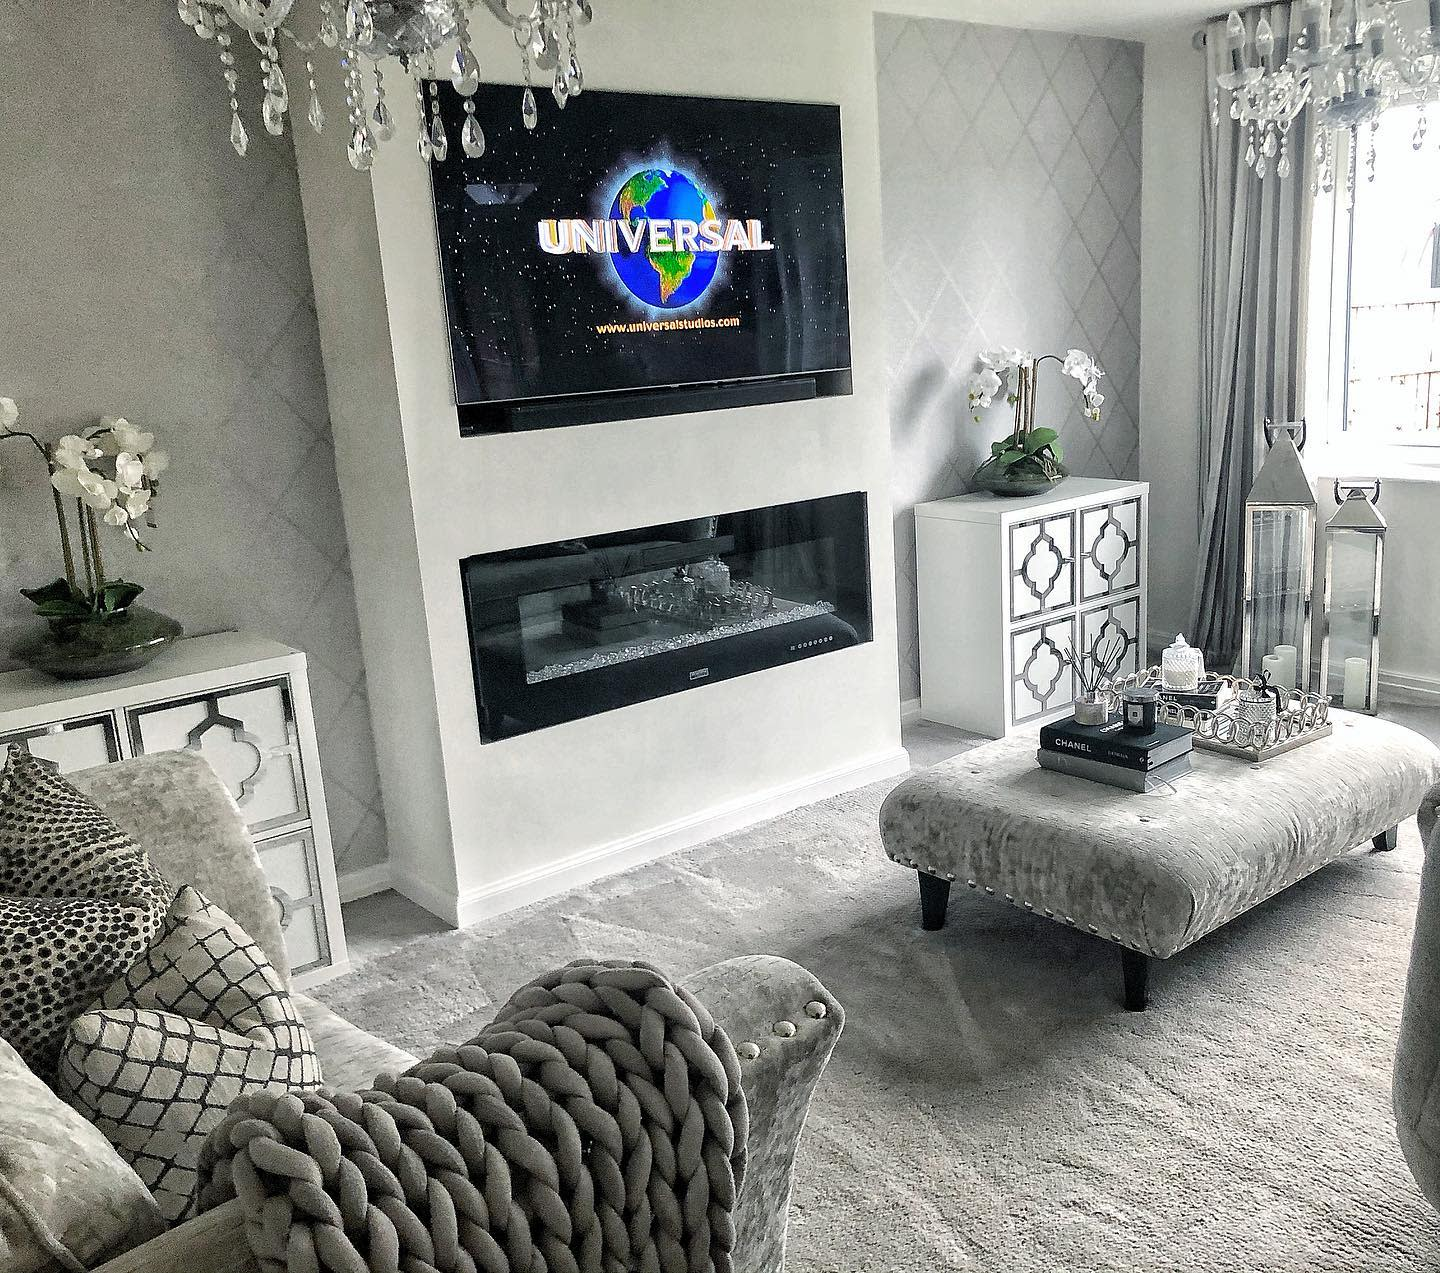 Wallpaper Accent Wall Ideas for Living Room -homesweethome_at_23